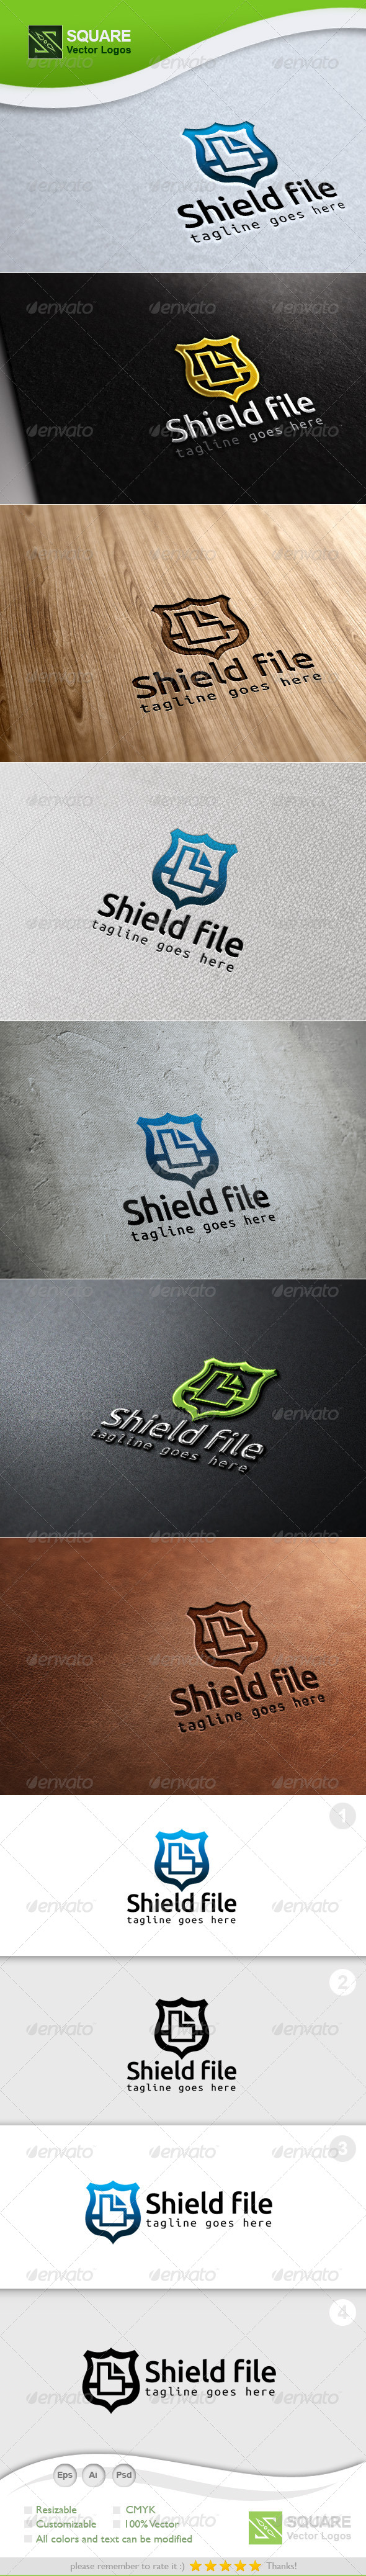 Shield, File Vector Logo Template - Symbols Logo Templates